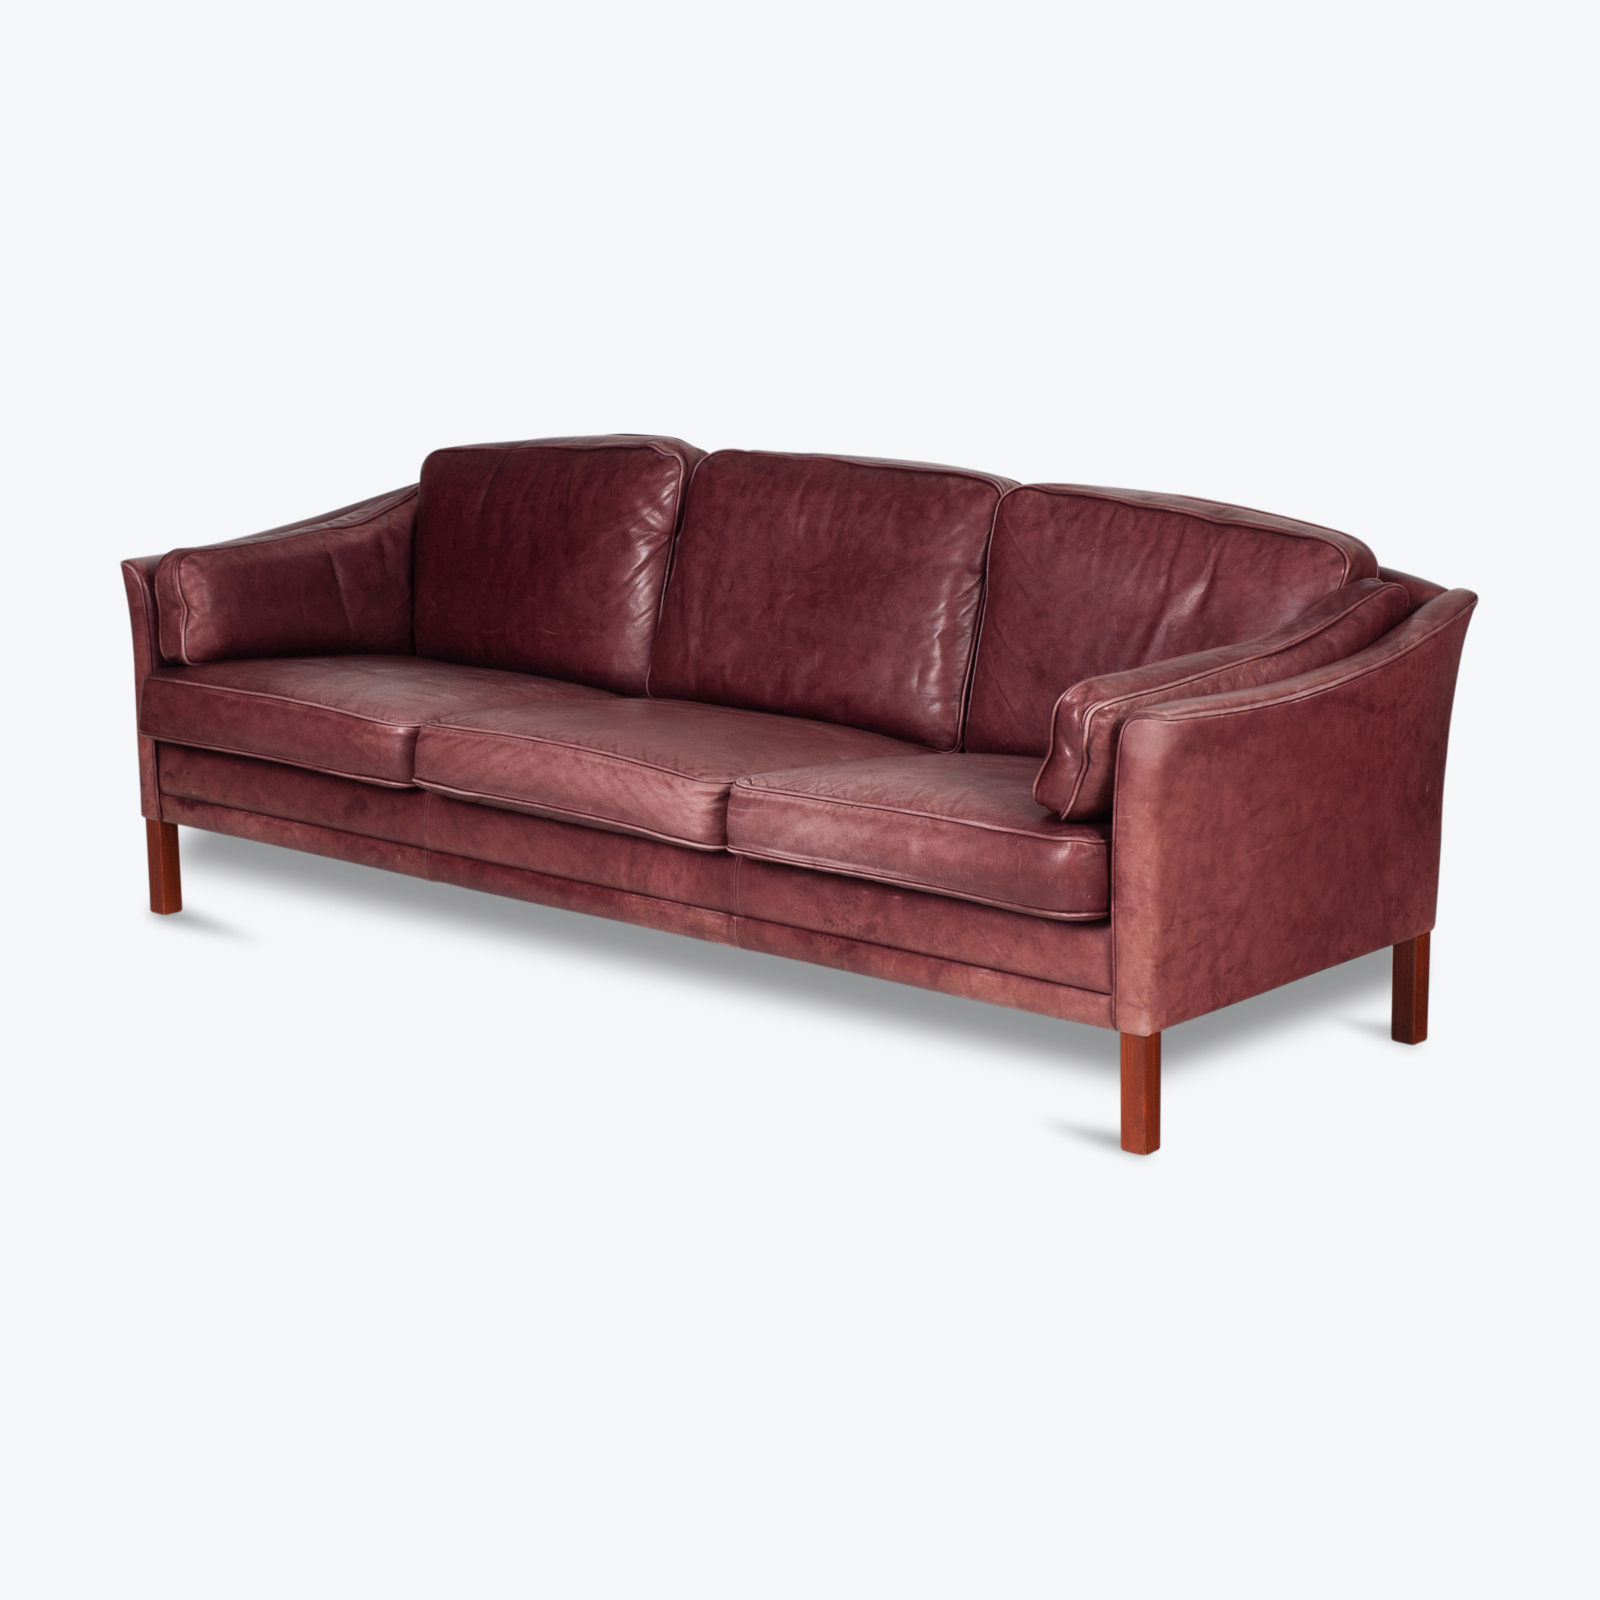 3 Seat Sofa By Mogens Hansen In Red Leather, 1960s, Denmark Hero